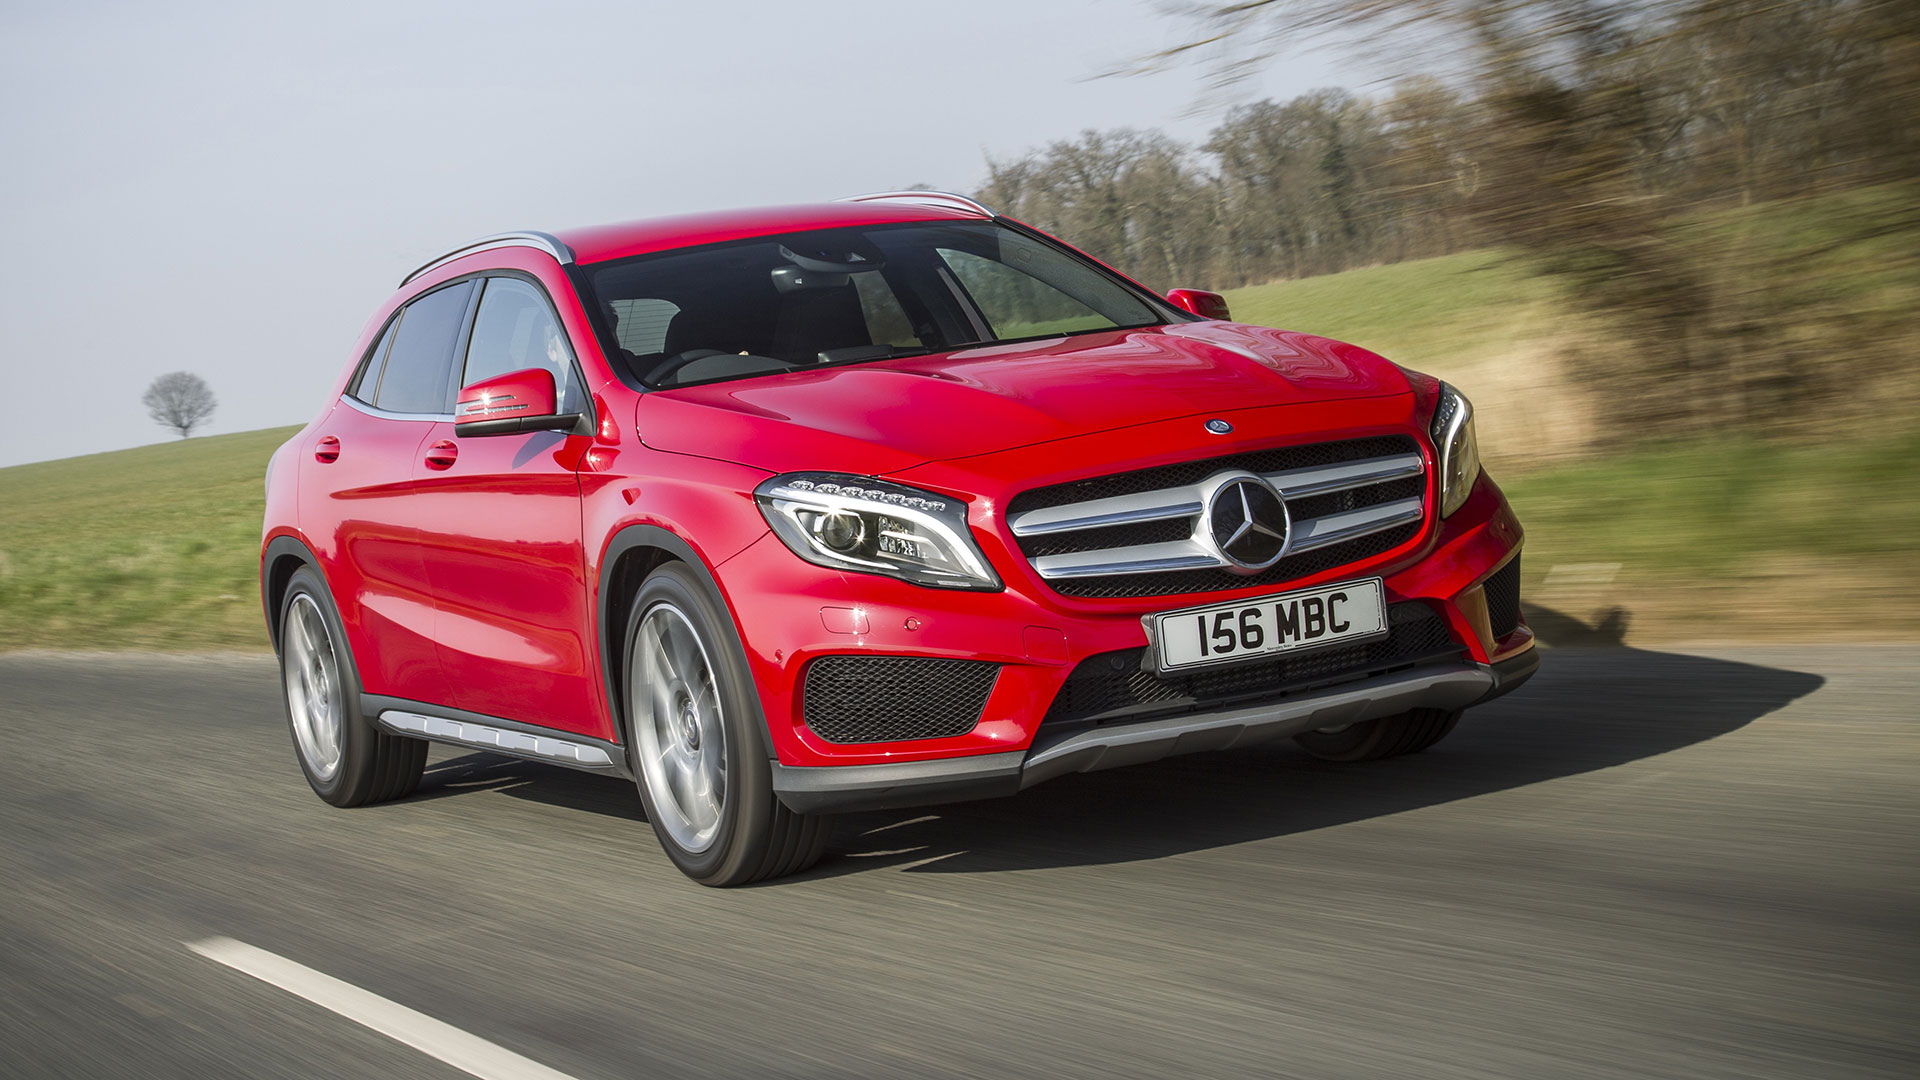 Used mercedes benz gla class cars for sale on auto trader uk for Used mercedes benz a class for sale